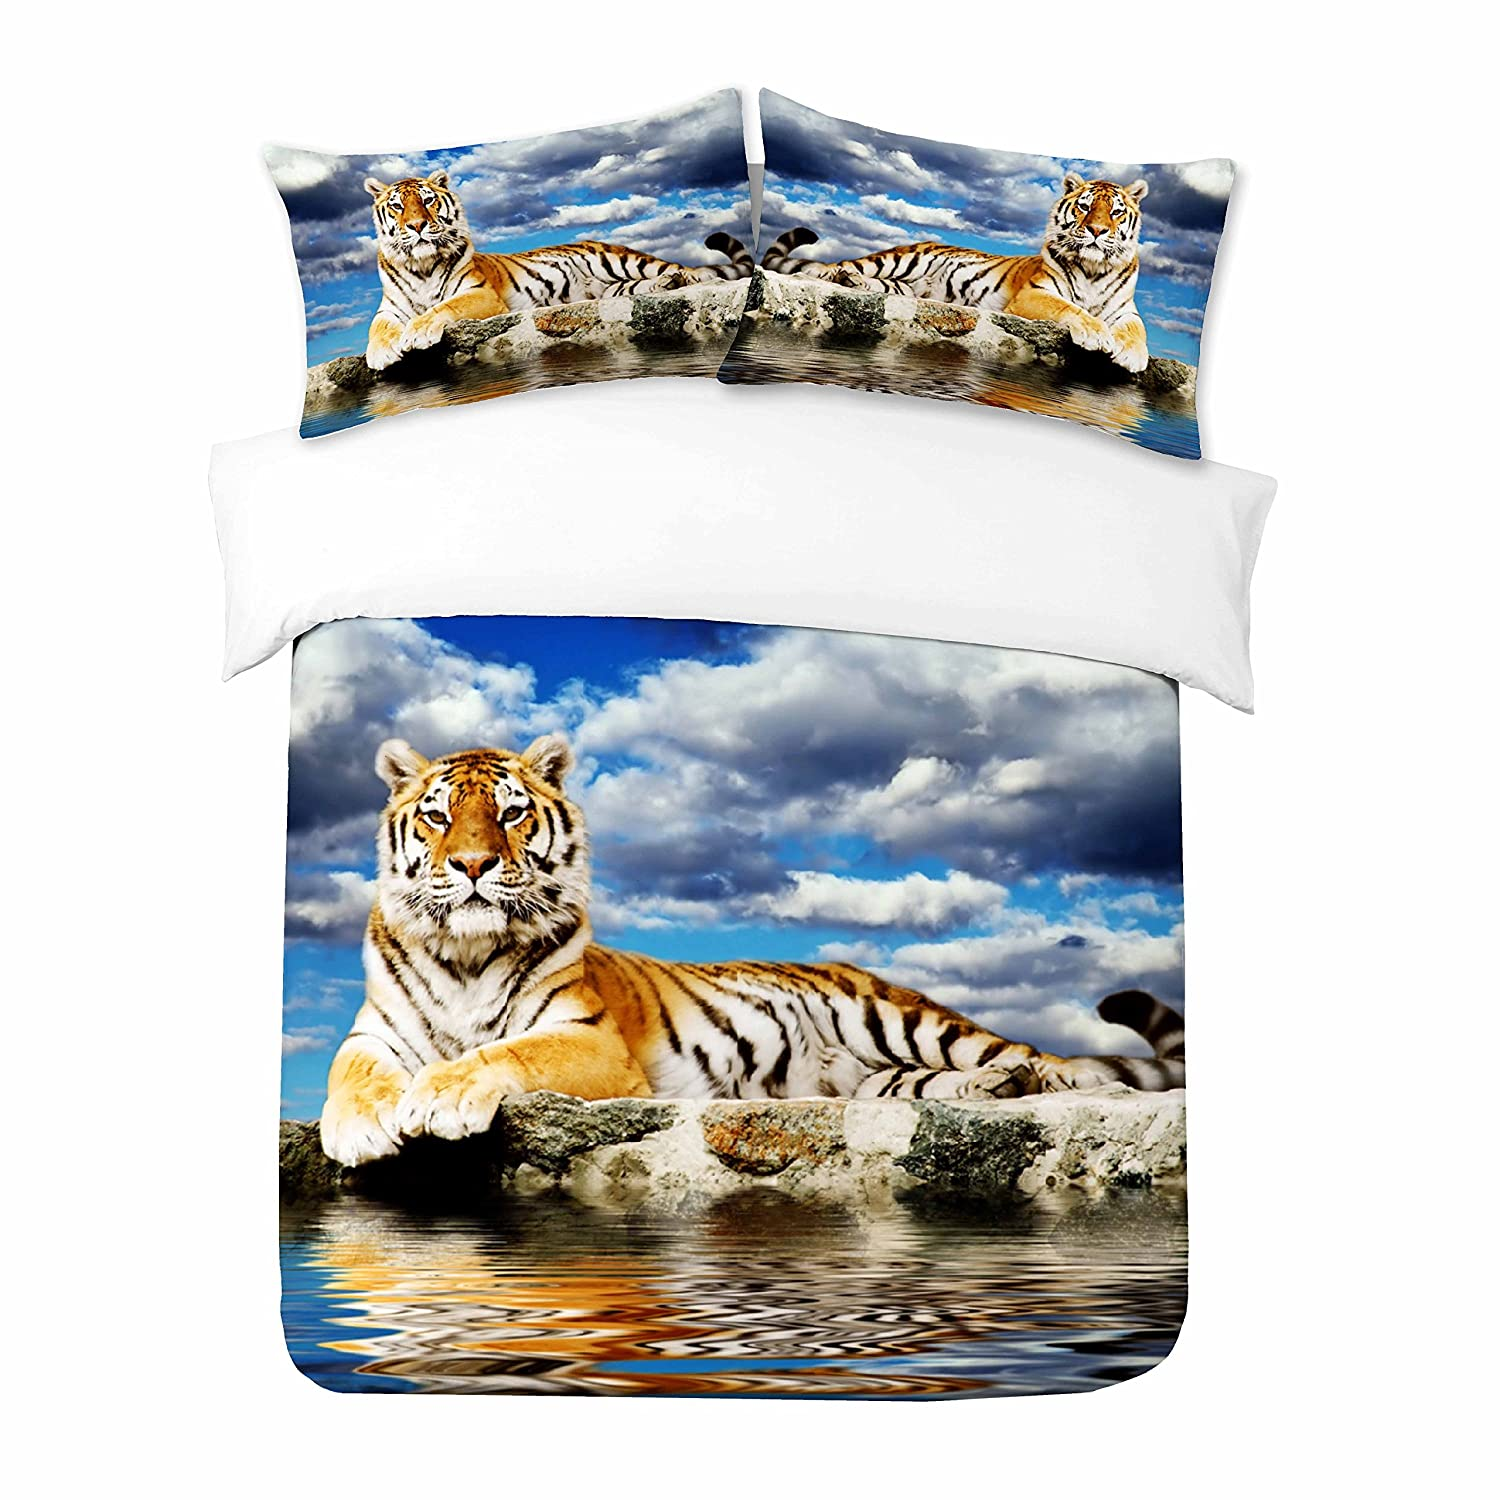 Adam Home 3D Digital Printing Bett Leinen Bettwäsche-Set Bettbezug + 1x Kissenbezug - Beautiful Tiger Sitting On The Side Of The Water (Alle Größen)